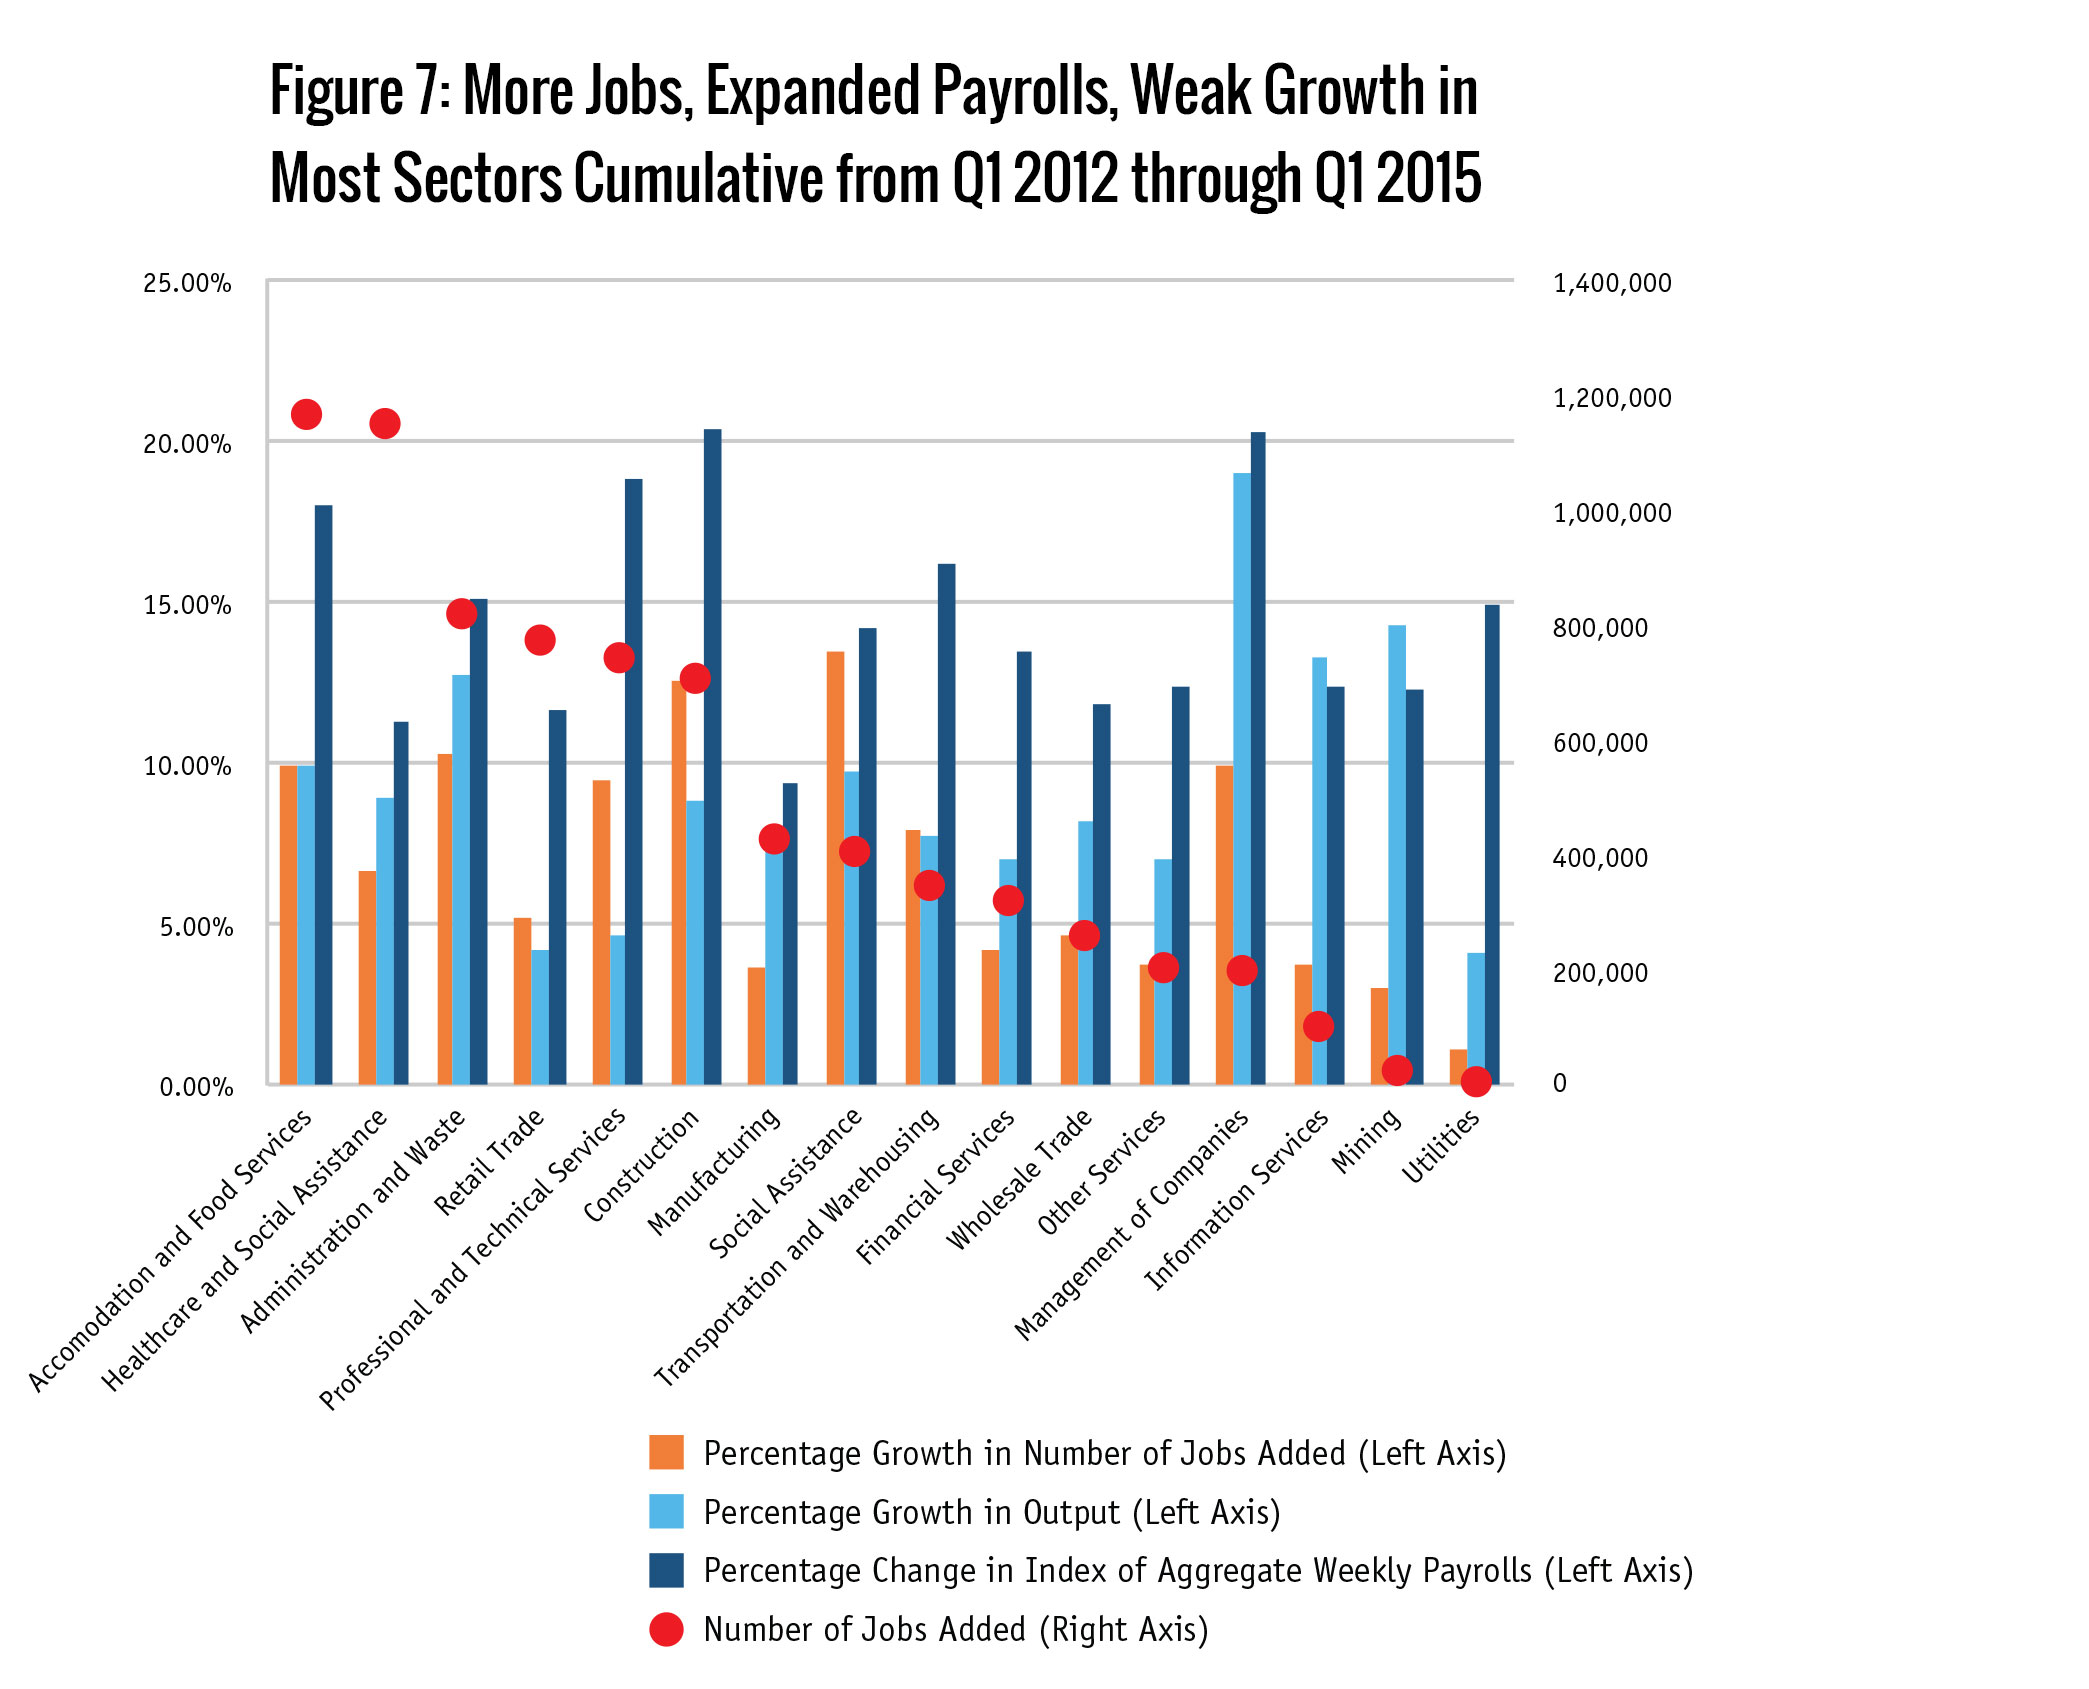 Figure 7: More Jobs, Expanded Payrolls, Weak Growth in Most Sectors Cumulative from  Q1 2012 through Q1 2015